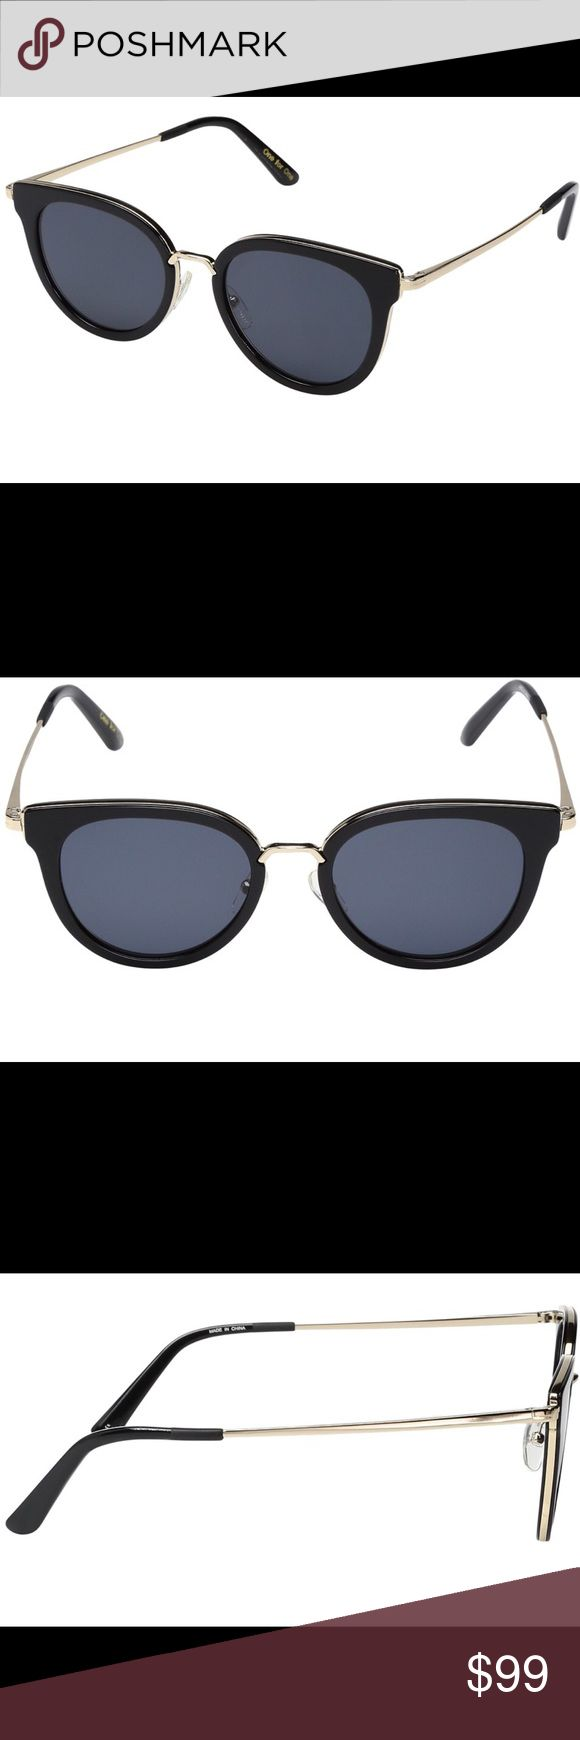 TOMS Rey Sunglasses TOMS Rey sunglasses in shiny black, brand new and in box! Retails for $159  -100% UVA/UVB protection -  handmade acetate frame -  5 barrel hinges for sturdiness Toms Accessories Sunglasses